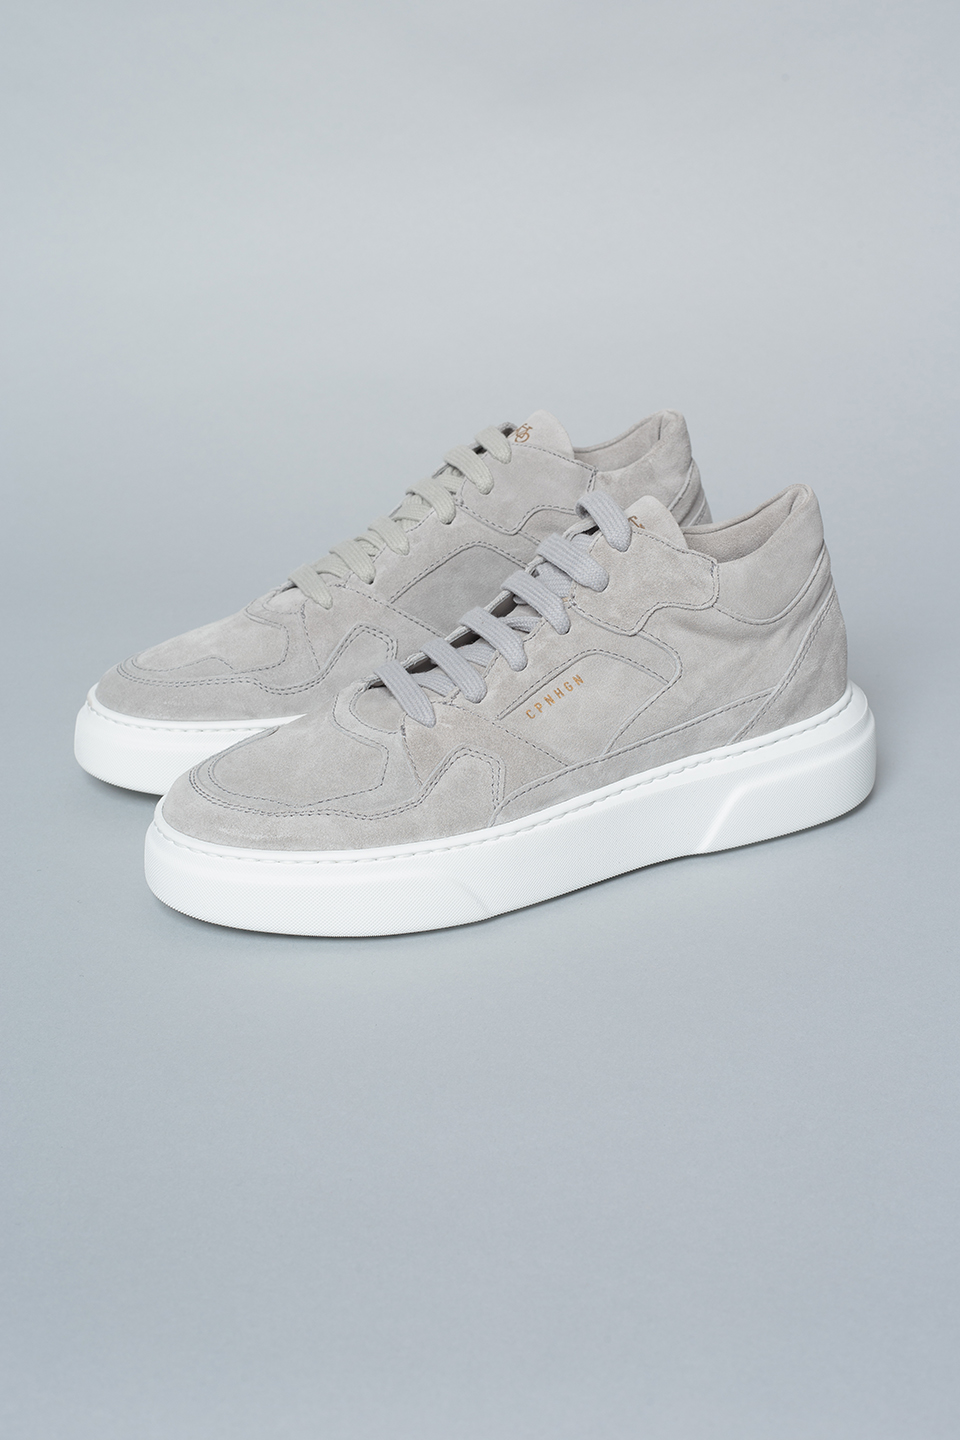 CPH111 crosta light grey - alternative 2